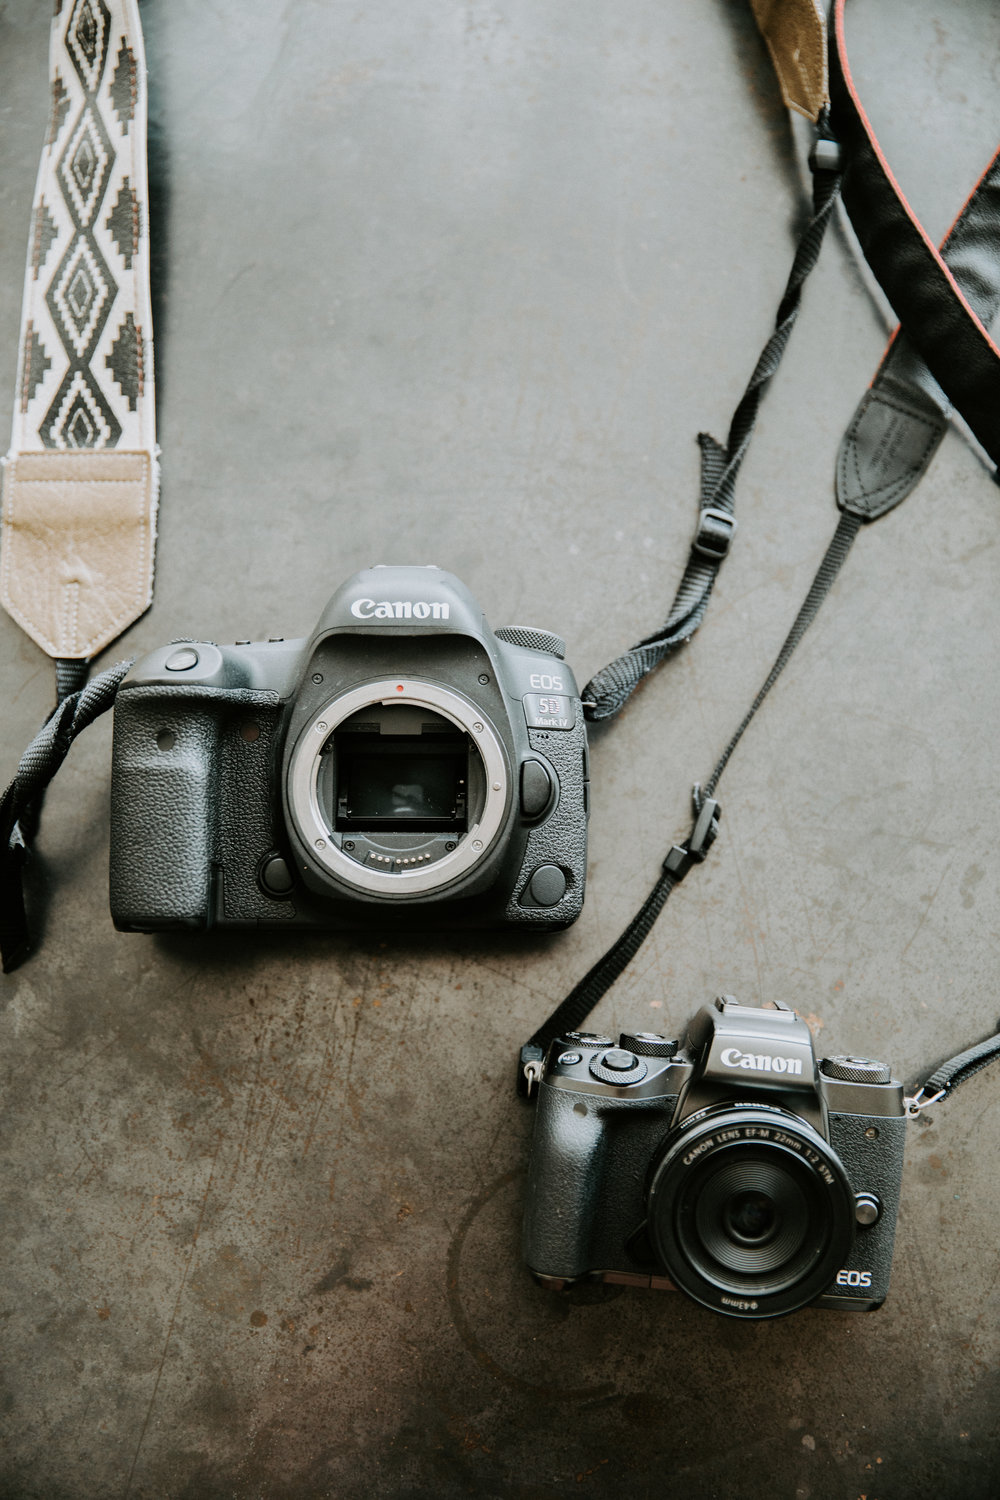 The two camera bodies I use pictured above are the Canon Mark IV & the Canon M5.